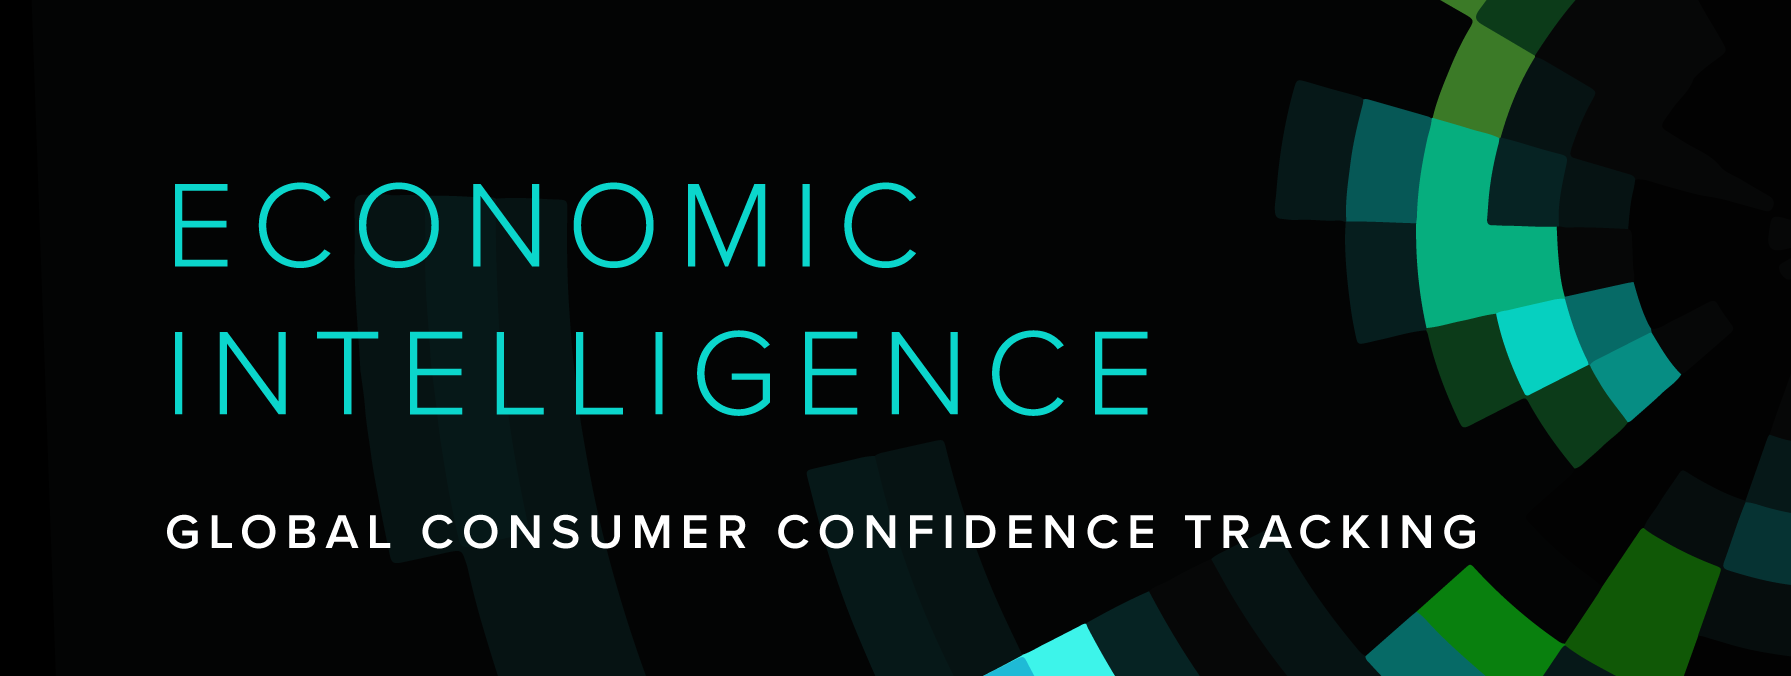 Morning Consult Economic Intelligence; Global Consumer Confidence Tracking